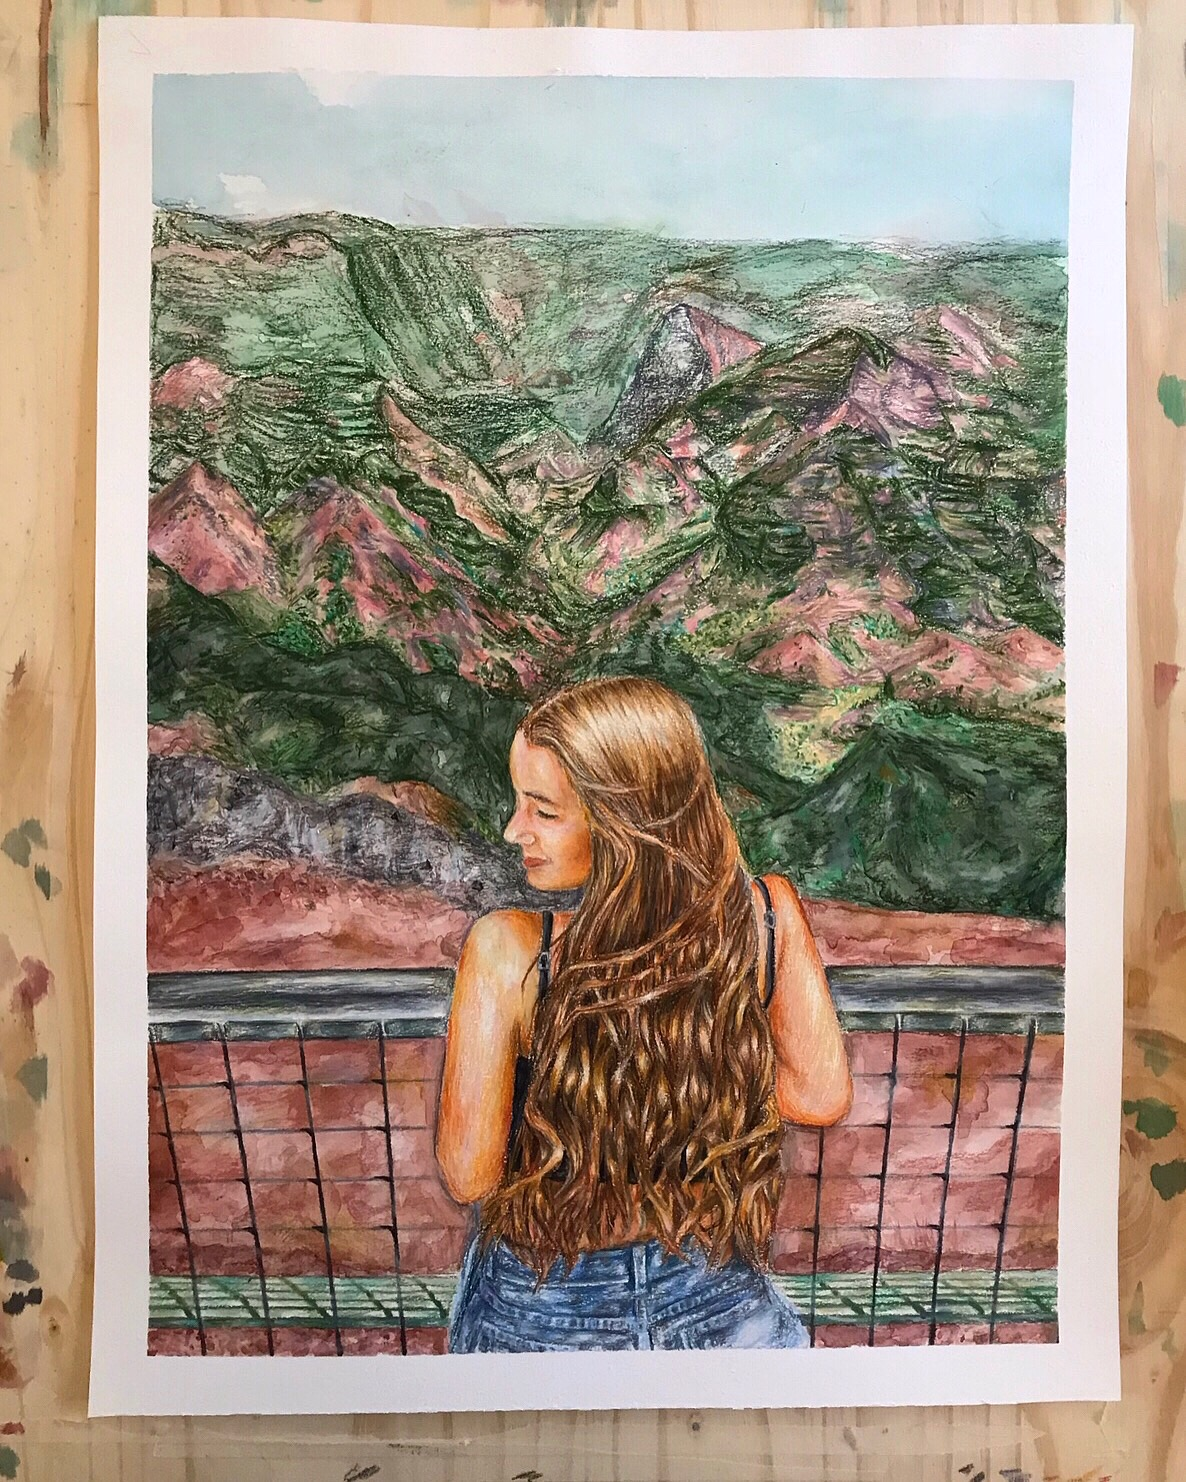 Elizabeth Kronthal's self portrait with a background of a cluster of mountains.